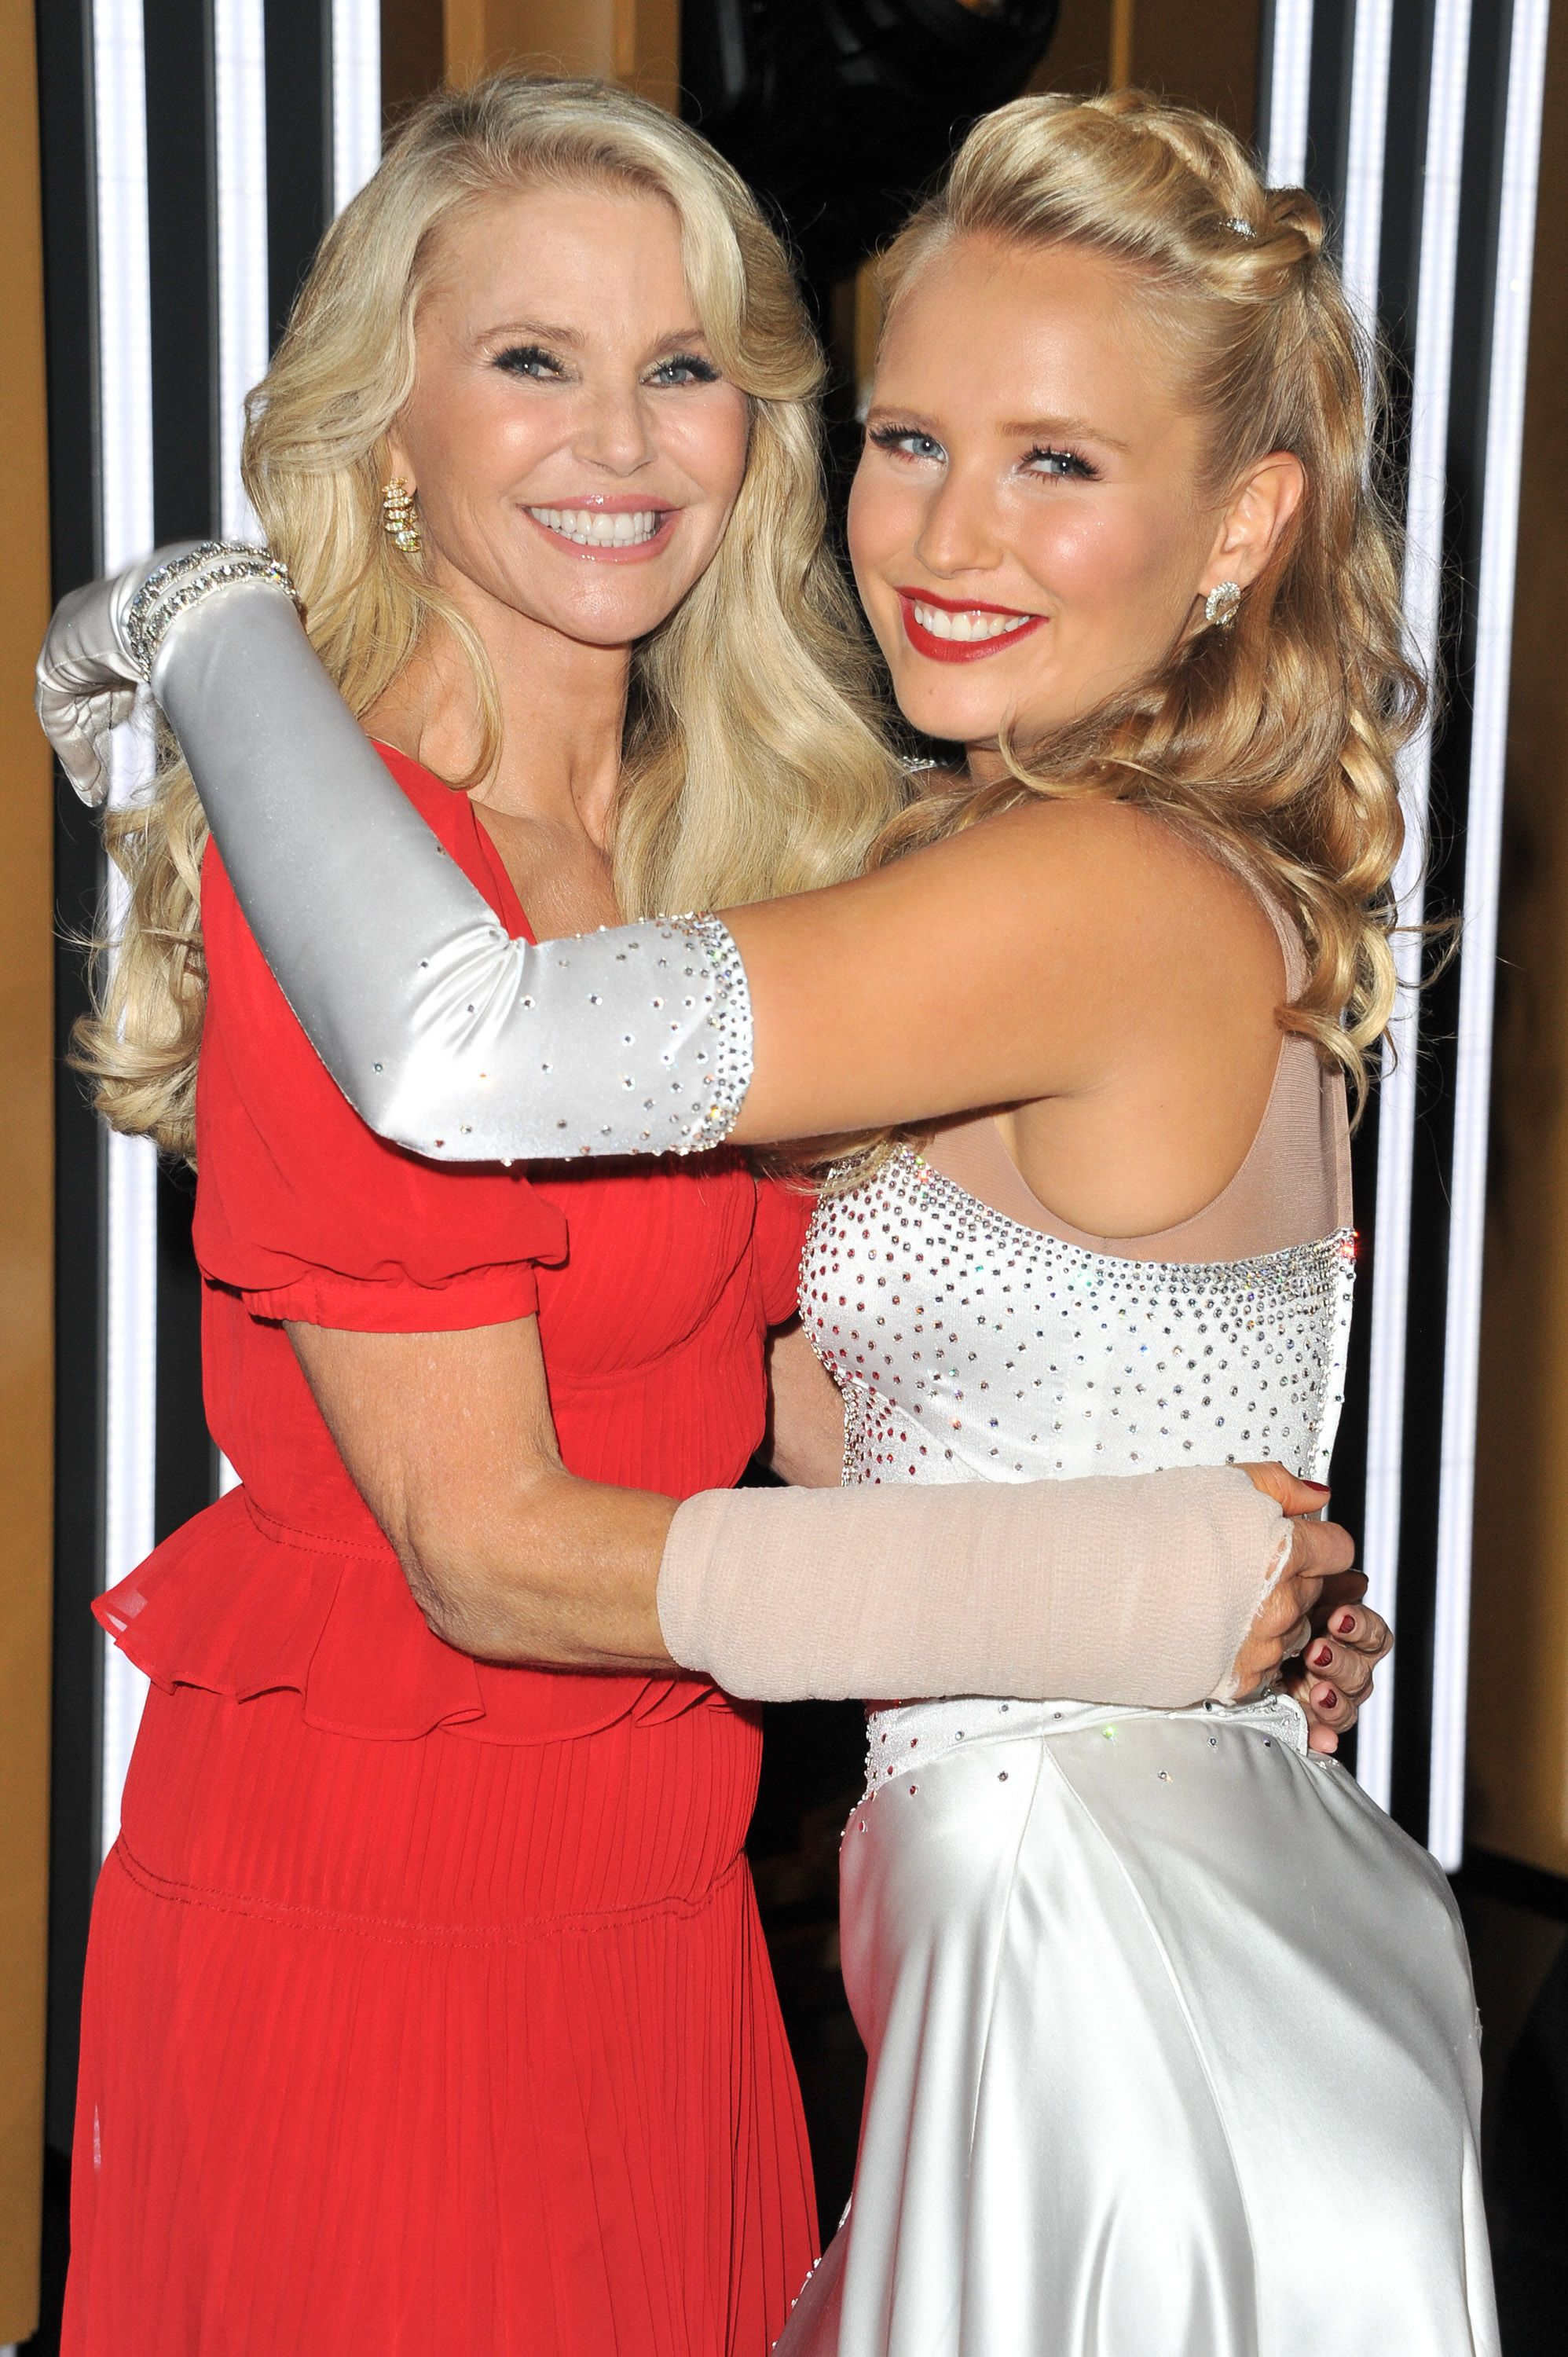 Christie Brinkley Wants to Return to Dancing with the Stars, According to Her Daughter Sailor